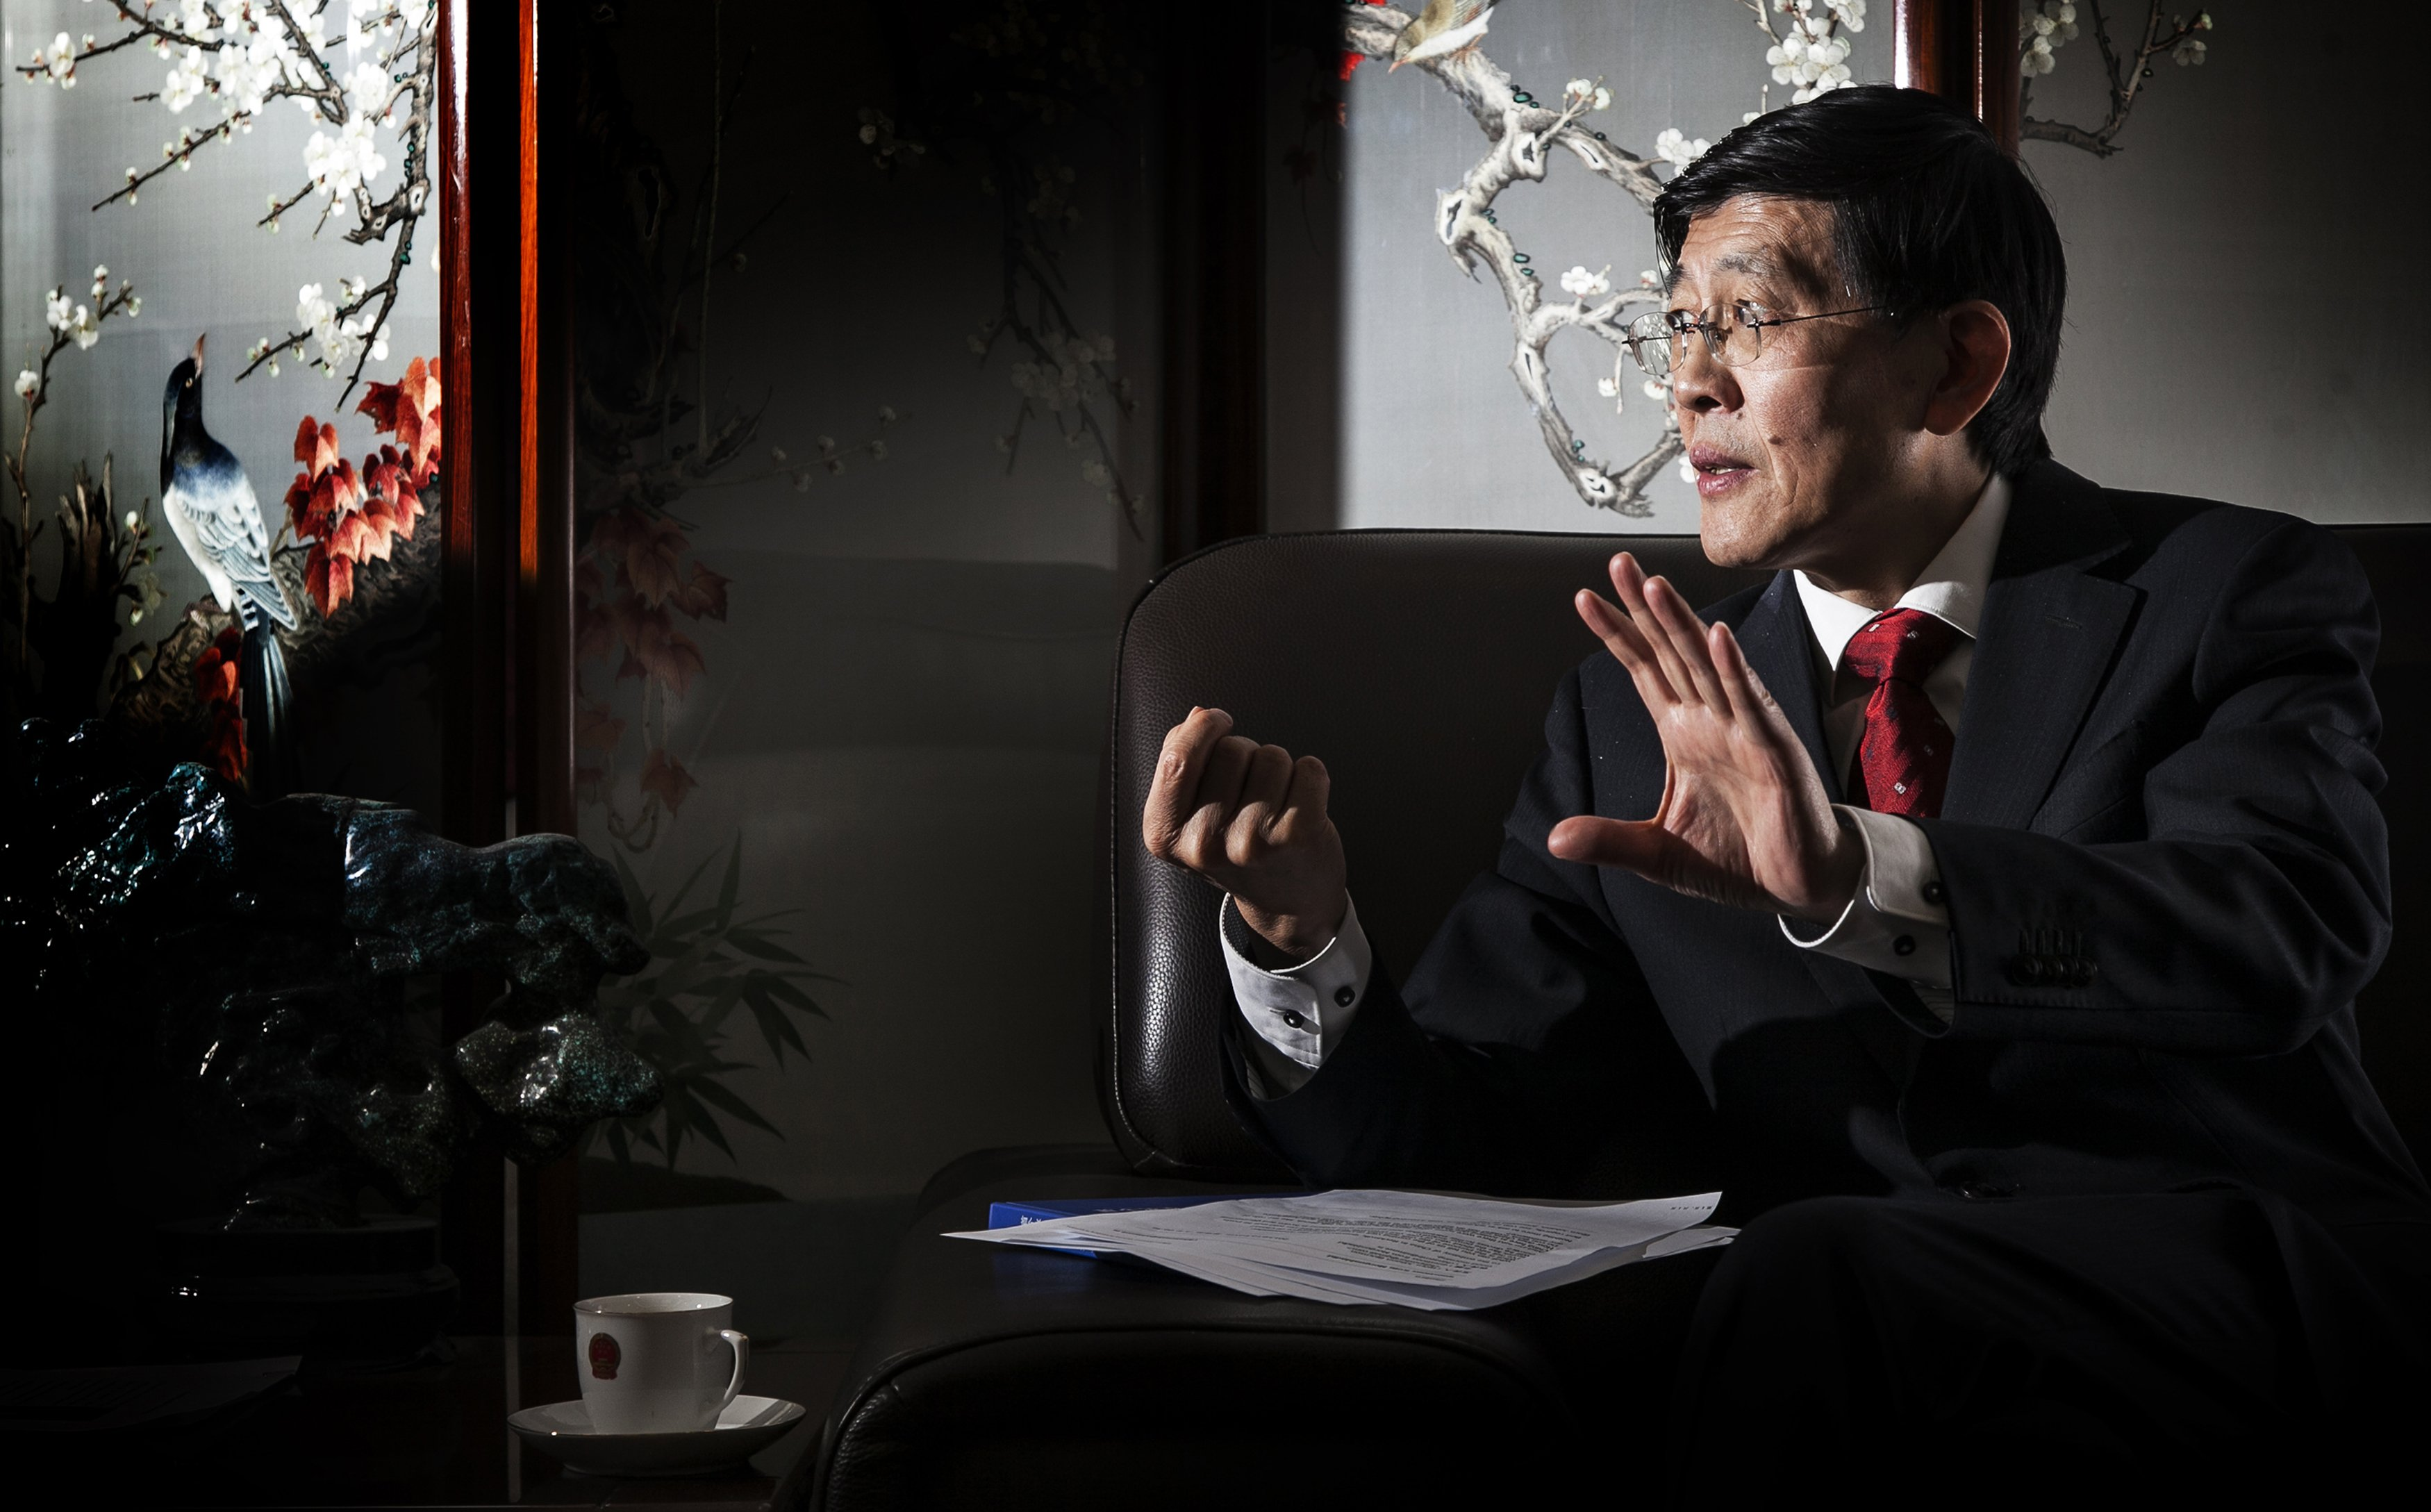 China's Ambassador to Iceland Ma Jisheng speaks during an interview at his residence in Reykjavik on Oct. 25, 2013. China's Foreign Ministry refused to say on Sept. 17, 2014 where its ambassador to Iceland was or who was even representing Beijing in the country, following reports he had been arrested by state security for passing secrets to Japan. | REUTERS